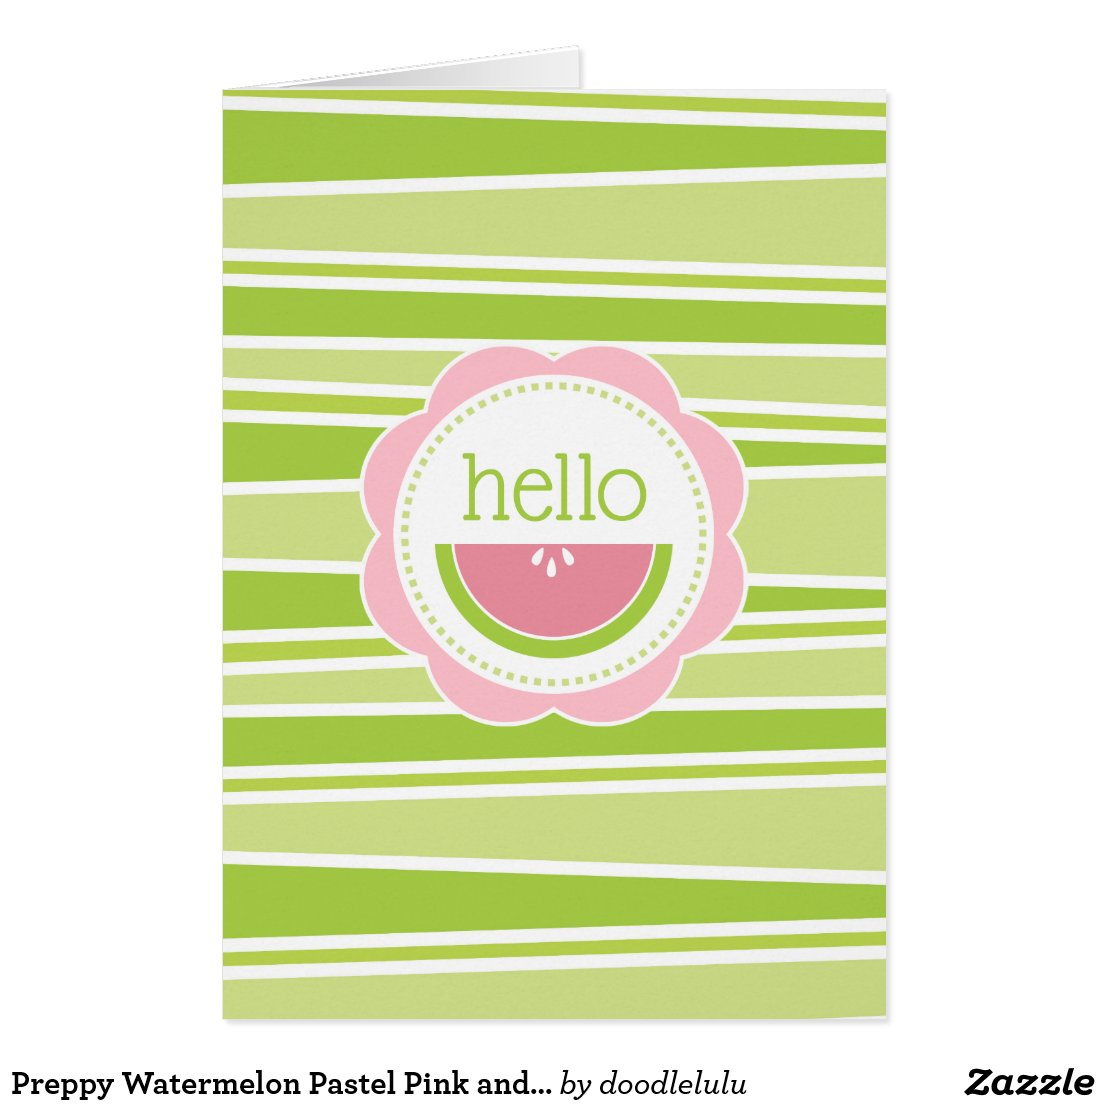 Preppy Watermelon Pastel Pink and Green